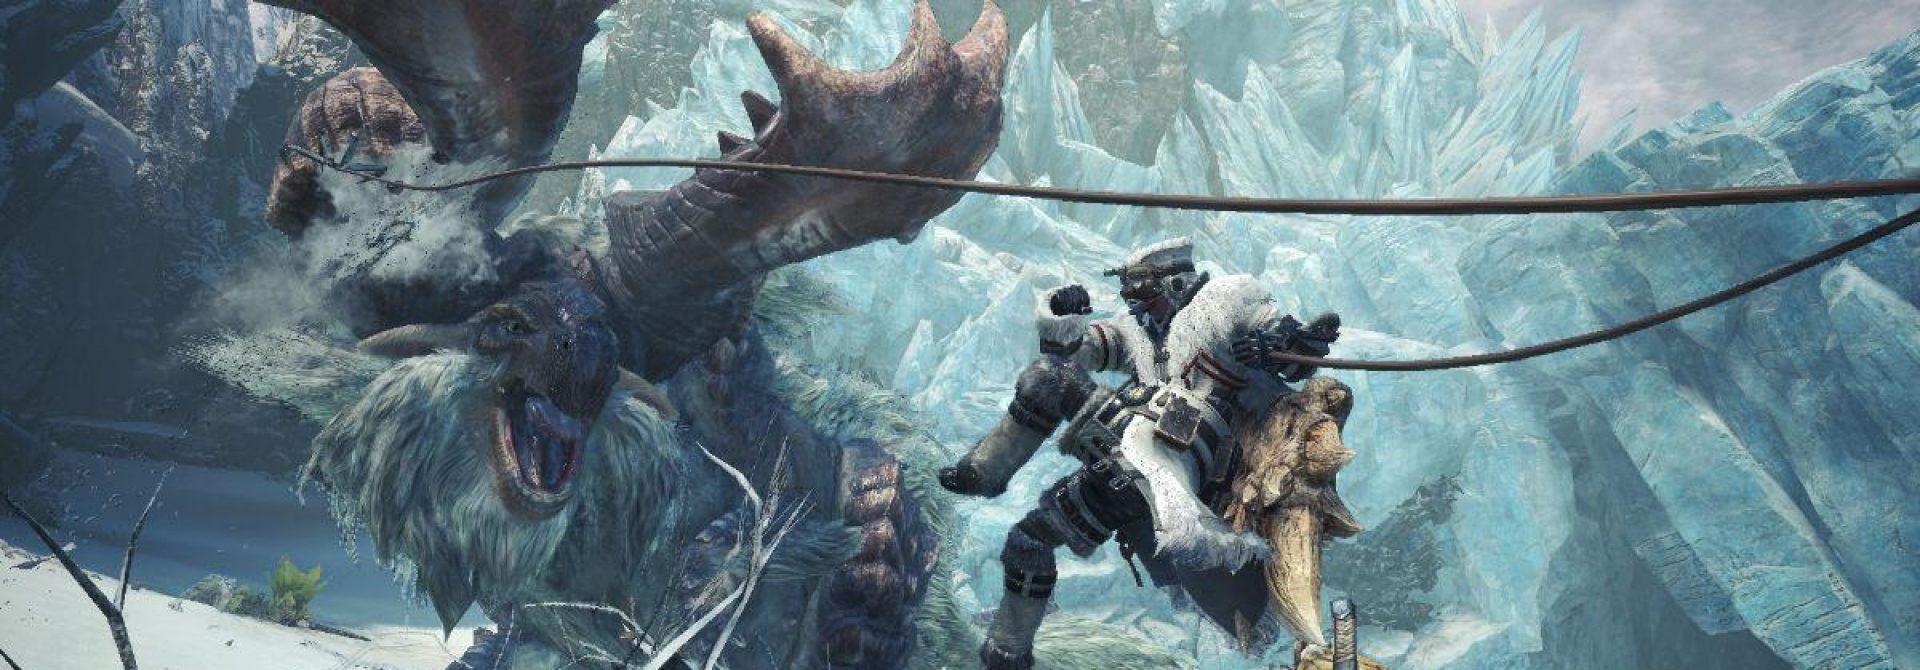 Monster Hunter World: Iceborne Comes To Steam January 9